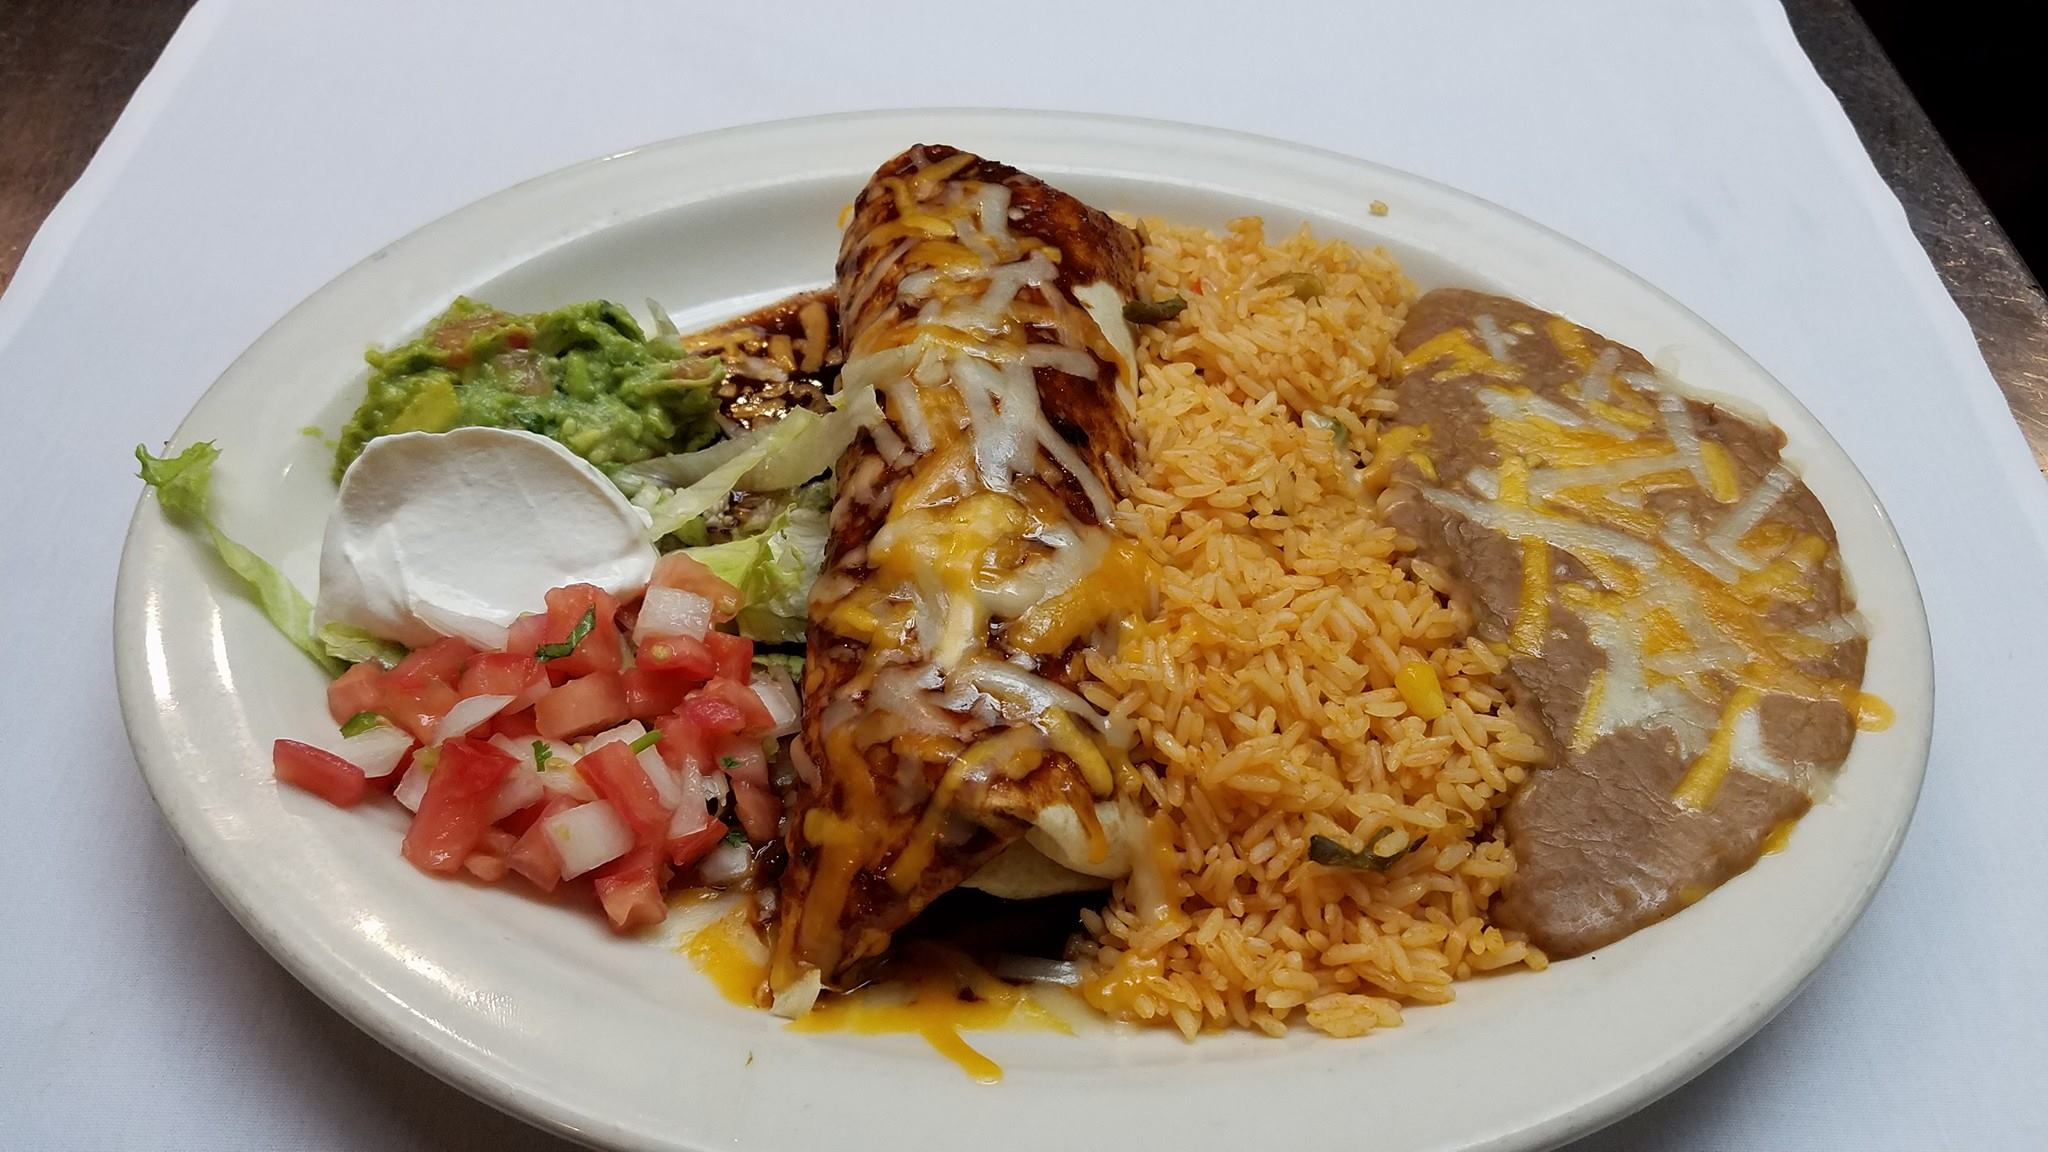 A flour filled tortilla topped with a homemade sauce and melted cheese; served with yellow Mexican rice, refried pinto beans, lettuce, pico de gallo, guacamole, and sour cream